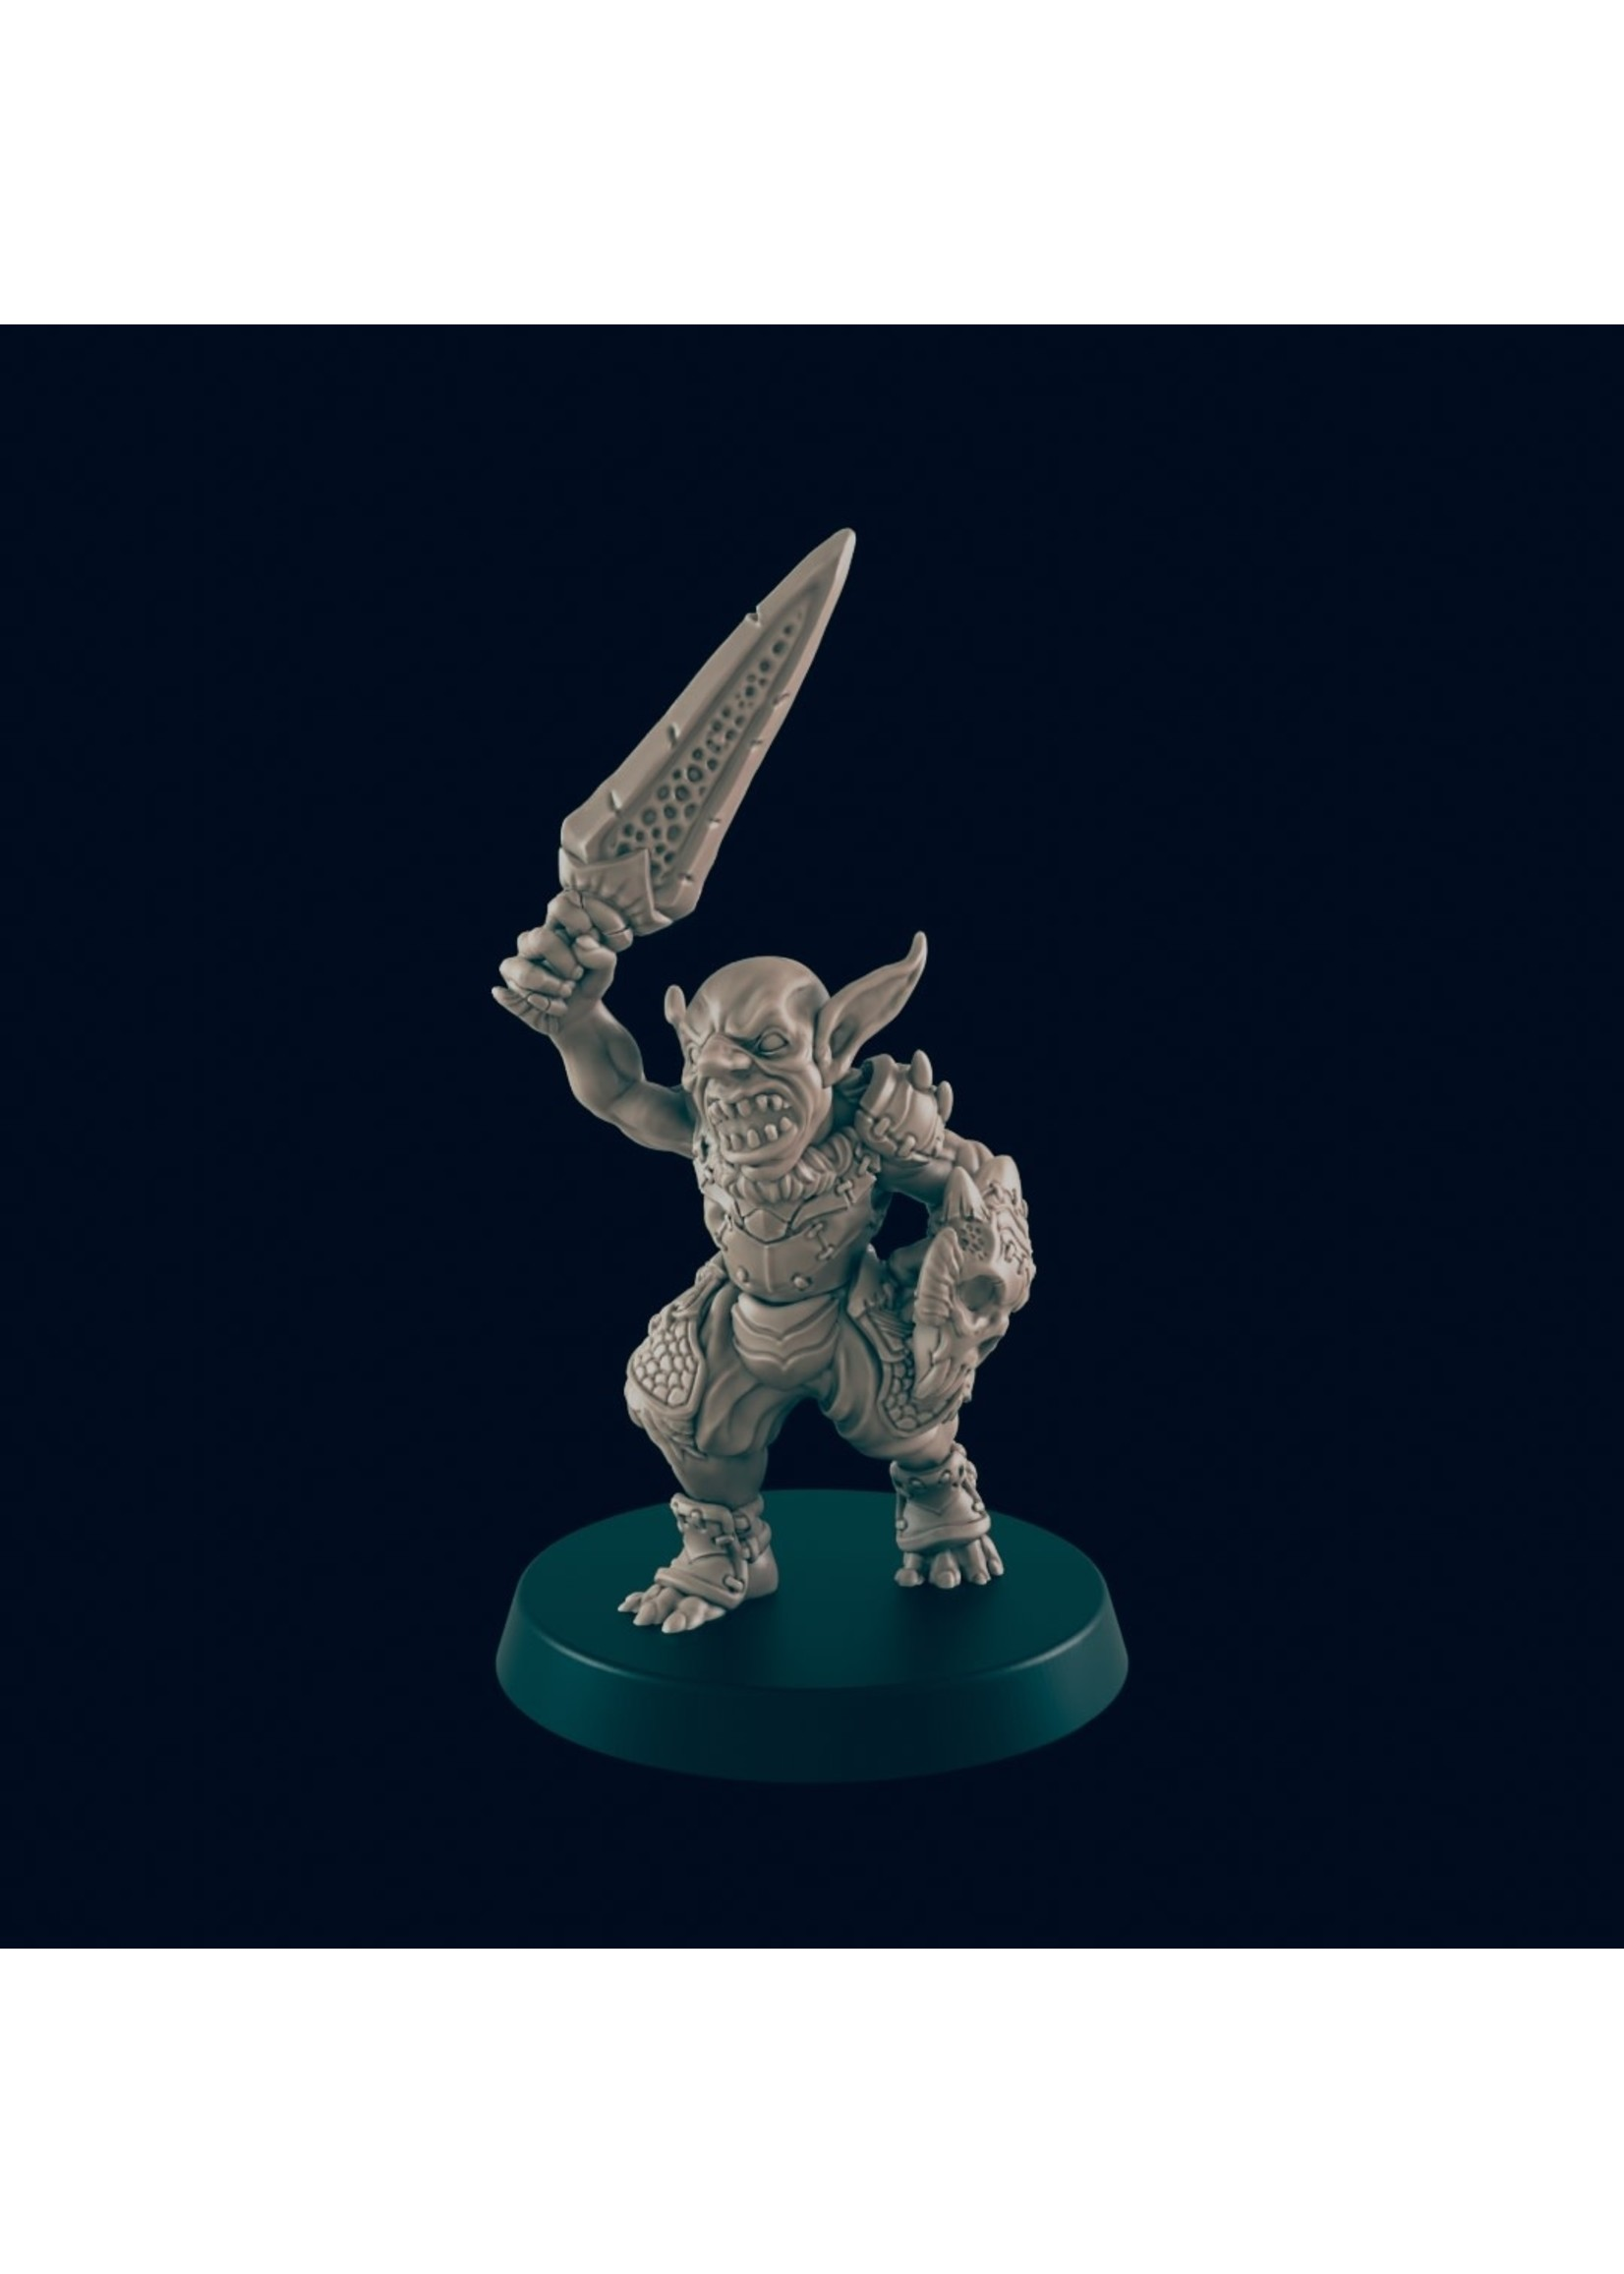 3D Printed Miniature - Goblin Warrior 2 - Dungeons & Dragons - Beasts and Baddies KS